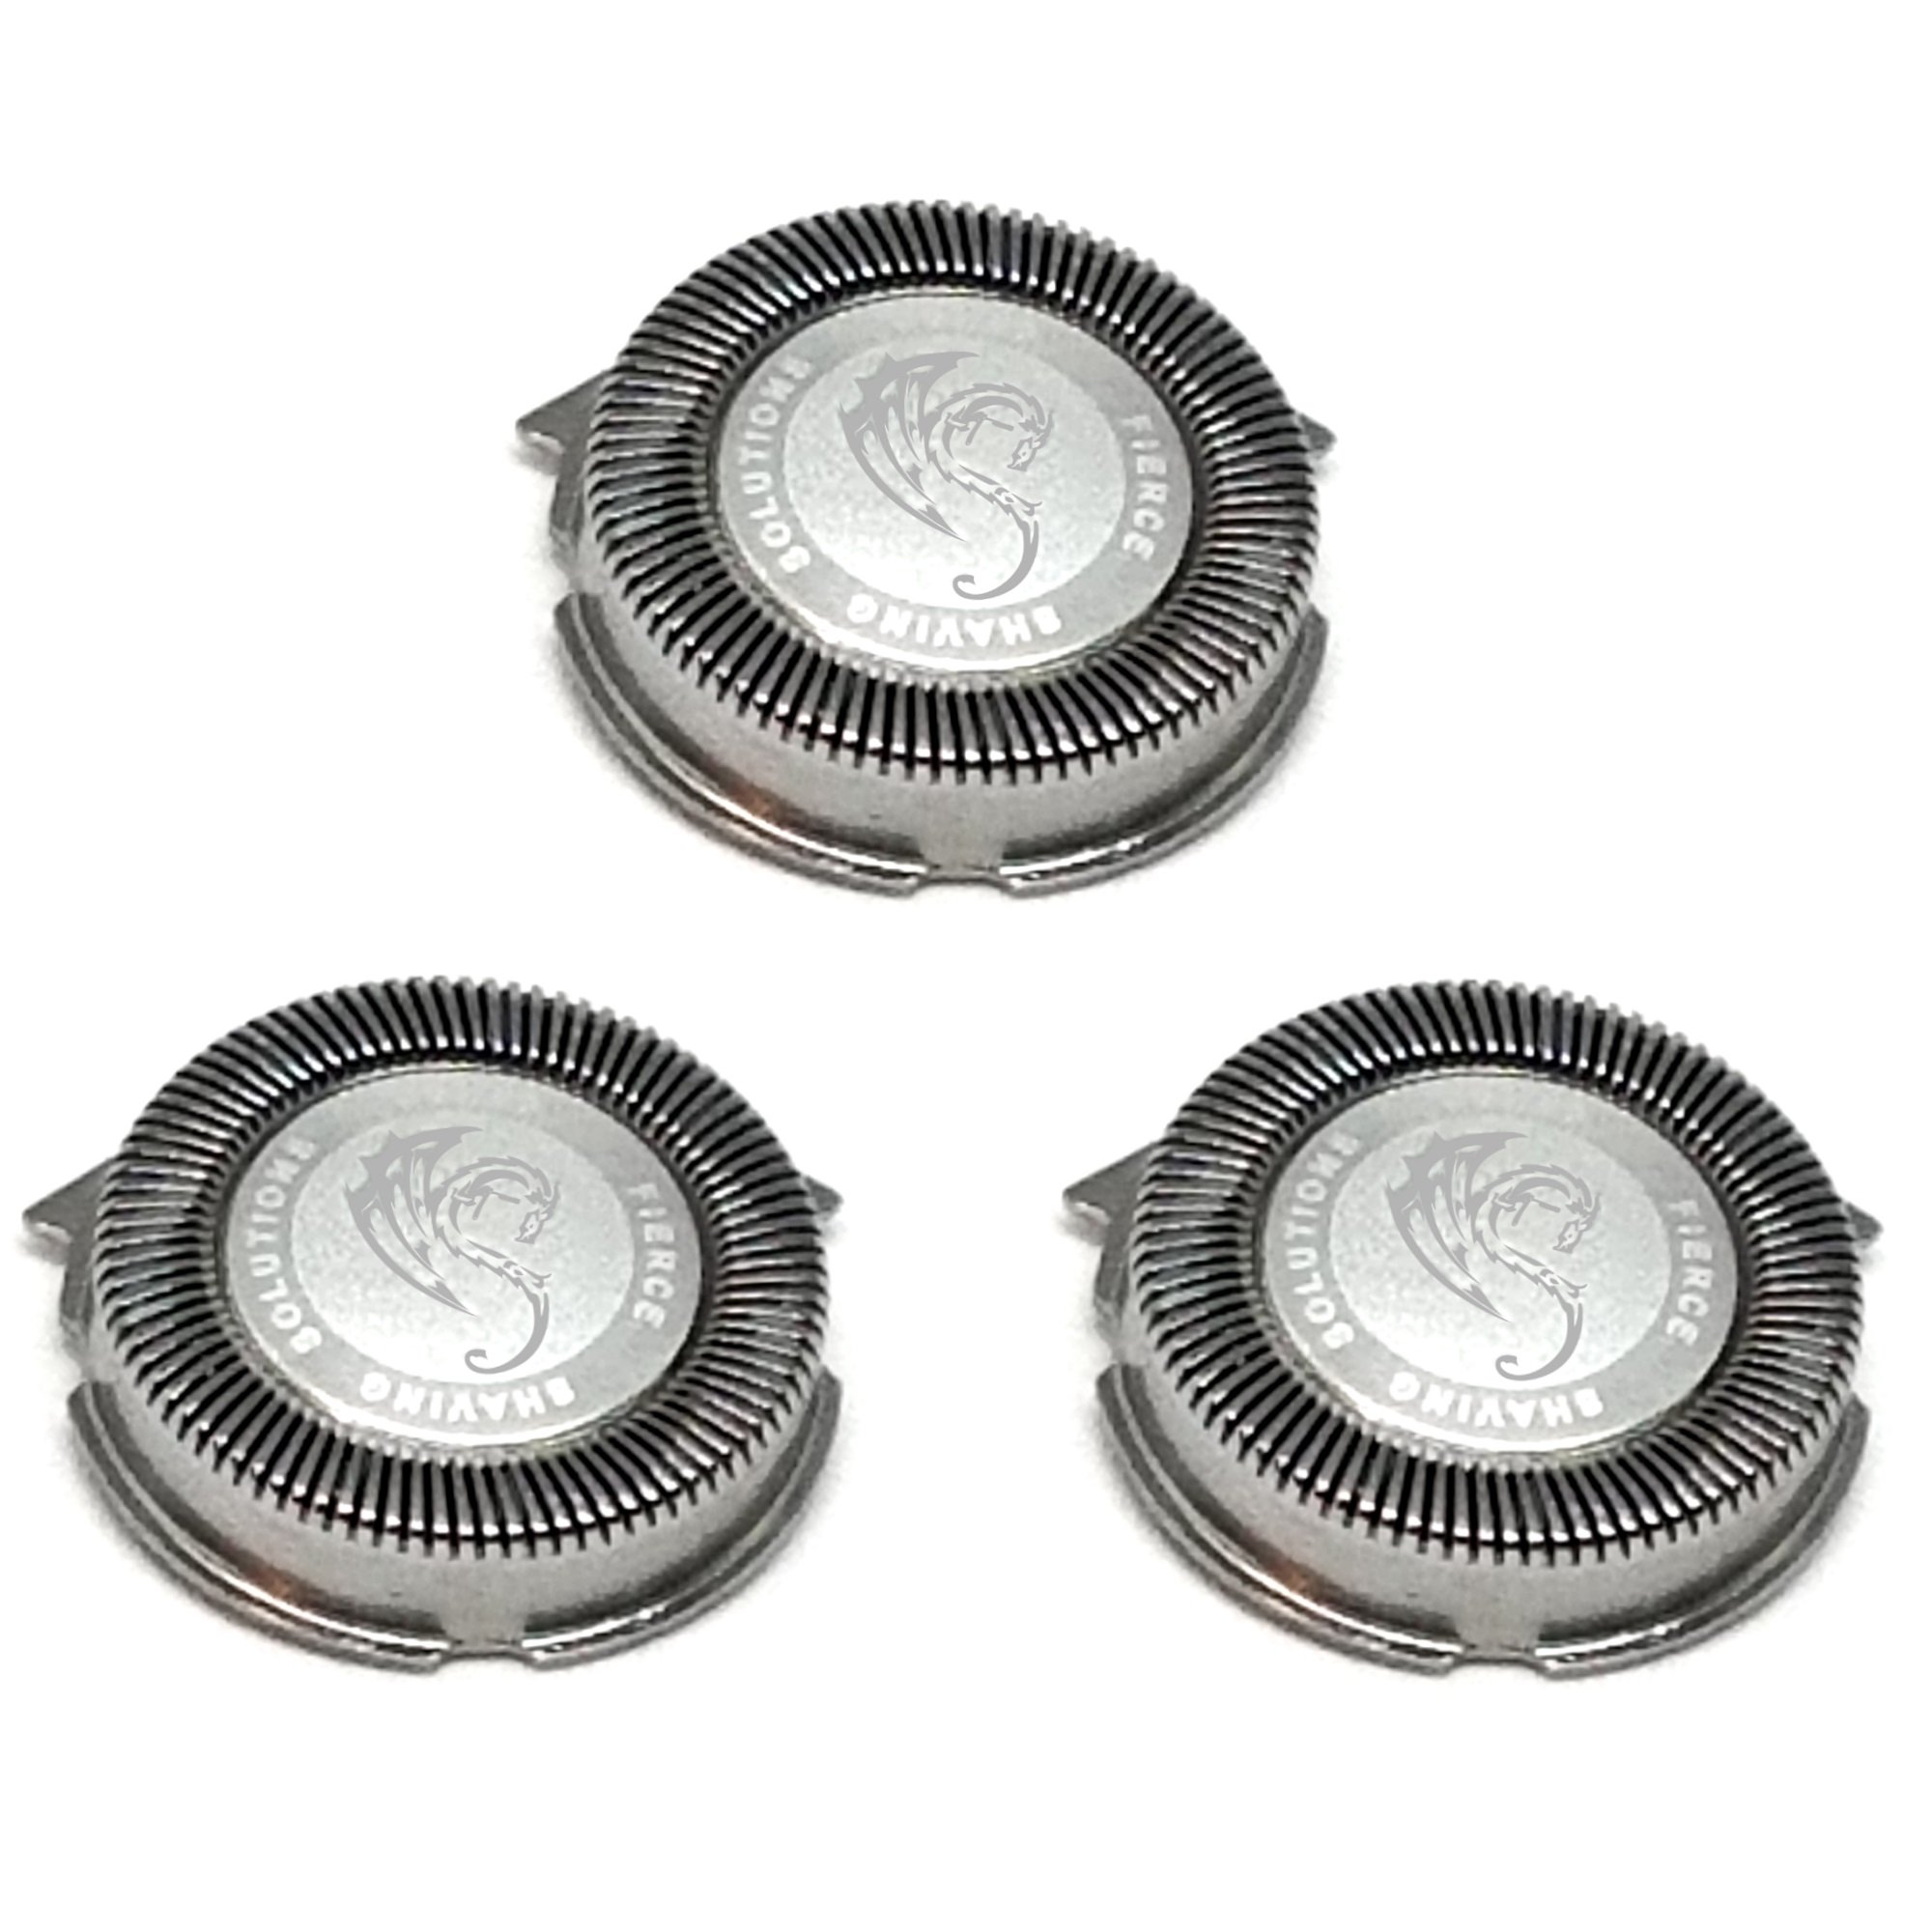 SH50/52 Replacement Heads Set of 3 Dual Precision Silver Dragon Universal Cooling Surface Blades for Philips Norelco Compatible Electric Shaver Series 5000